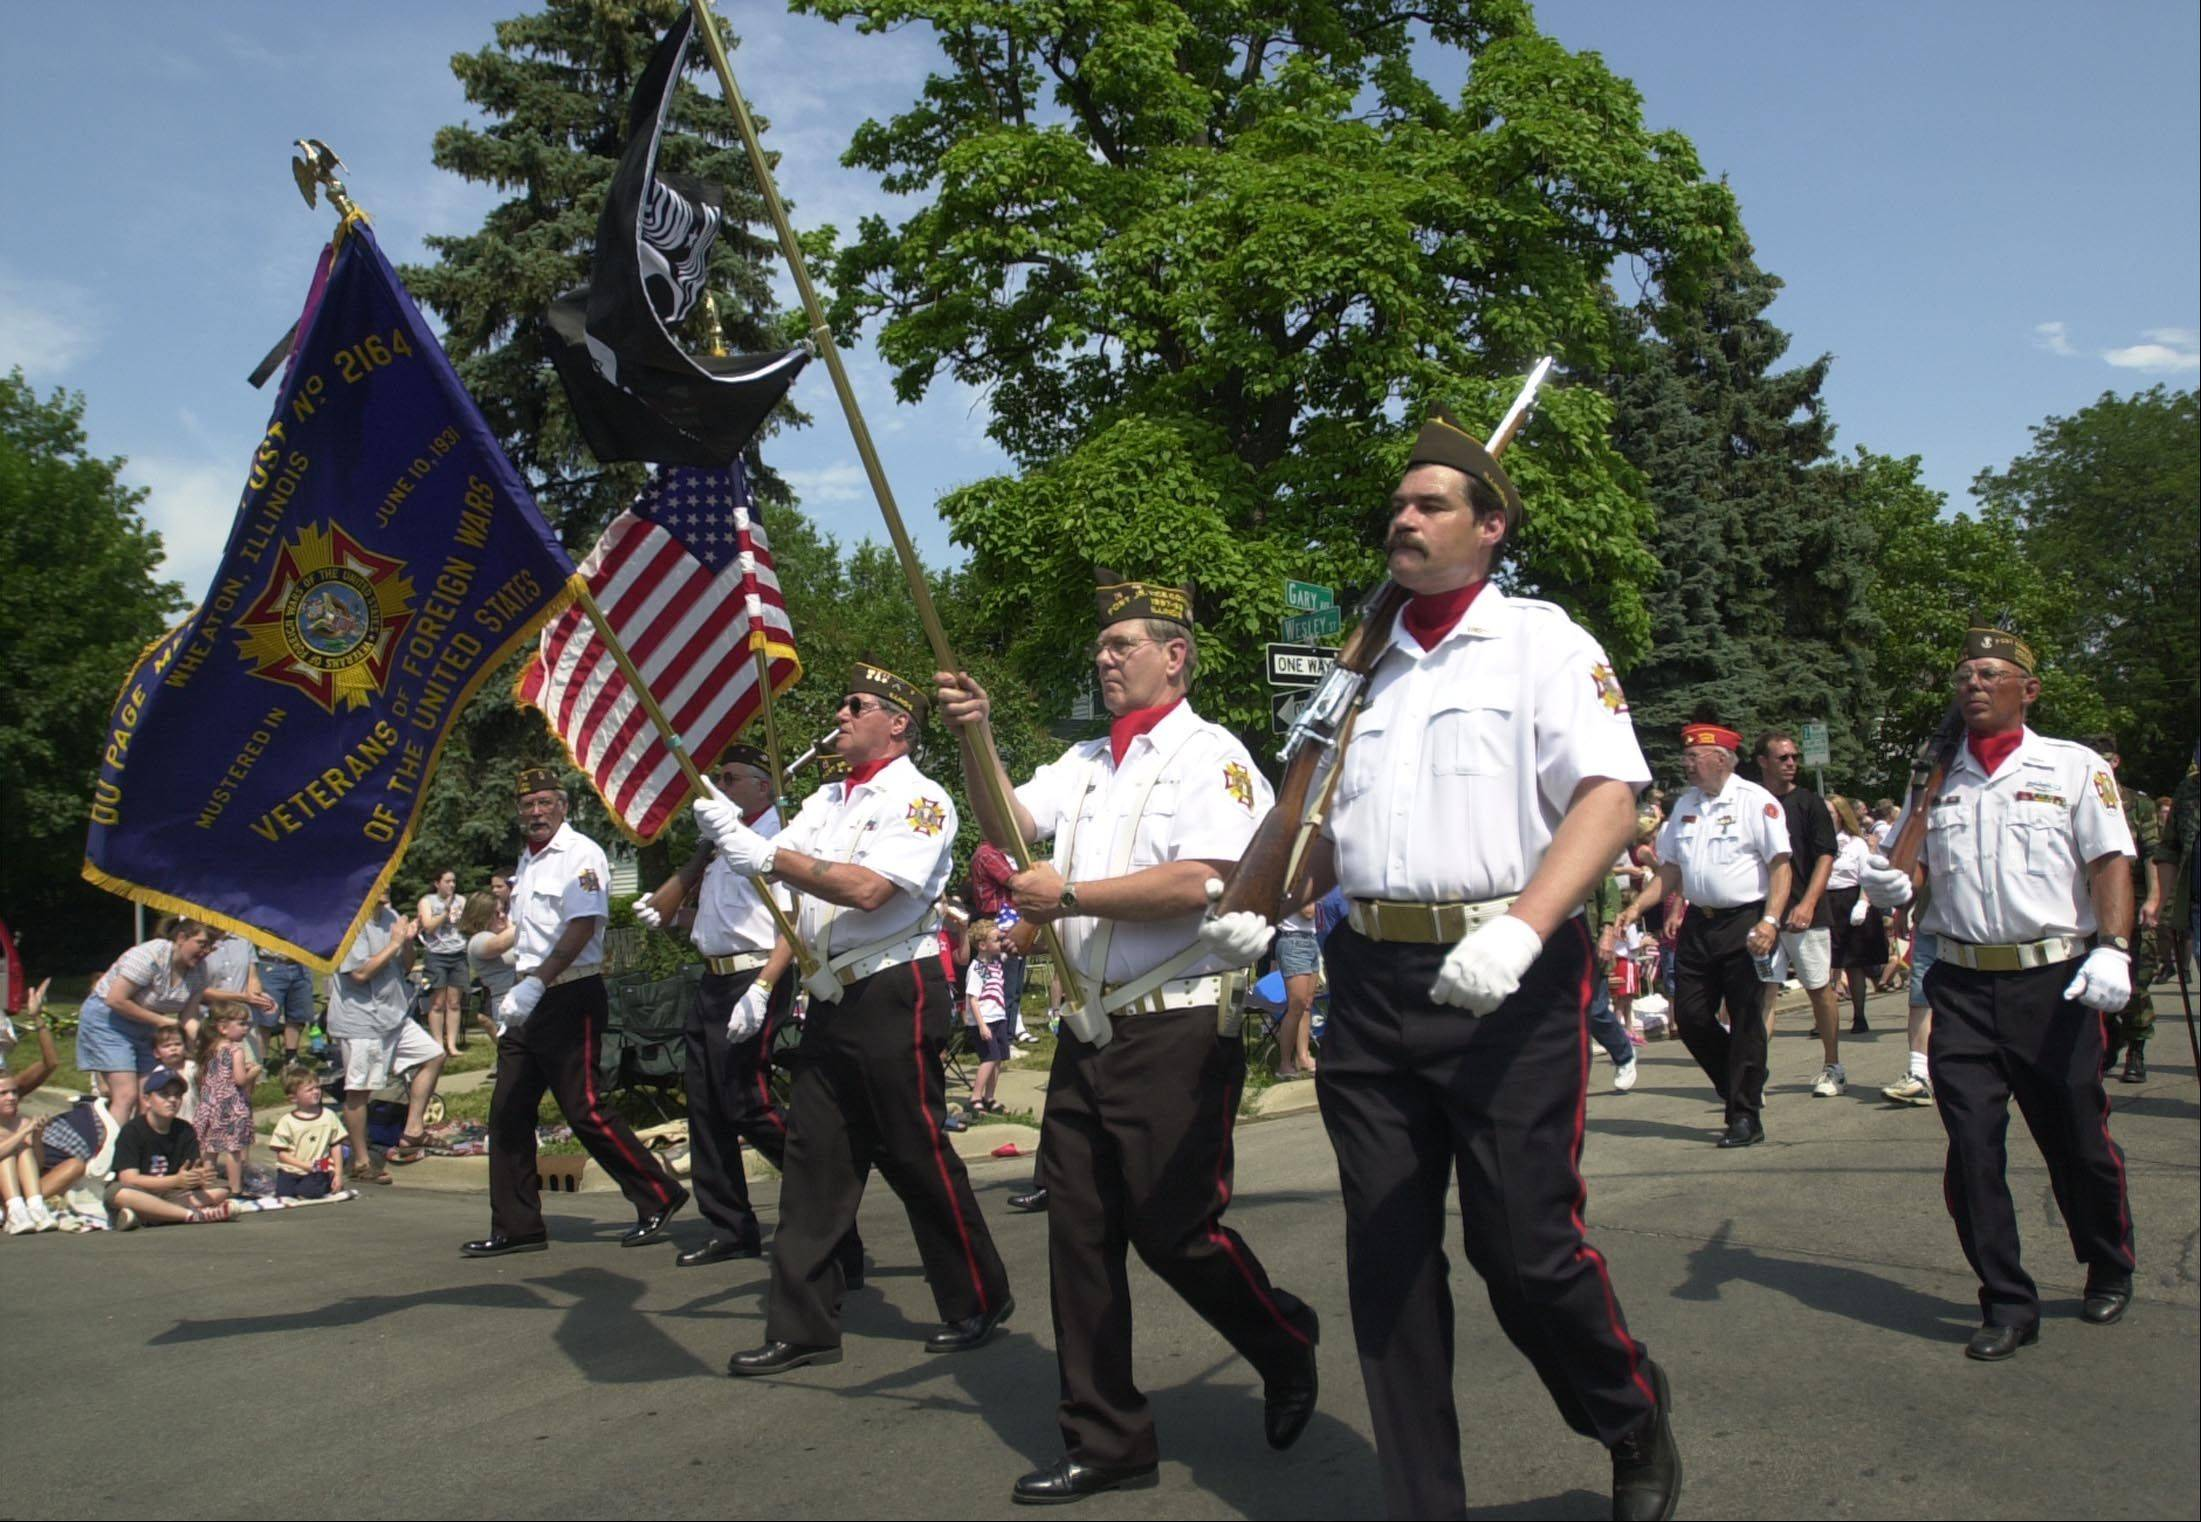 Wheaton Park District will host its rescheduled Independence Day Parade Monday starting at Main Street and Hawthorne Boulevard.